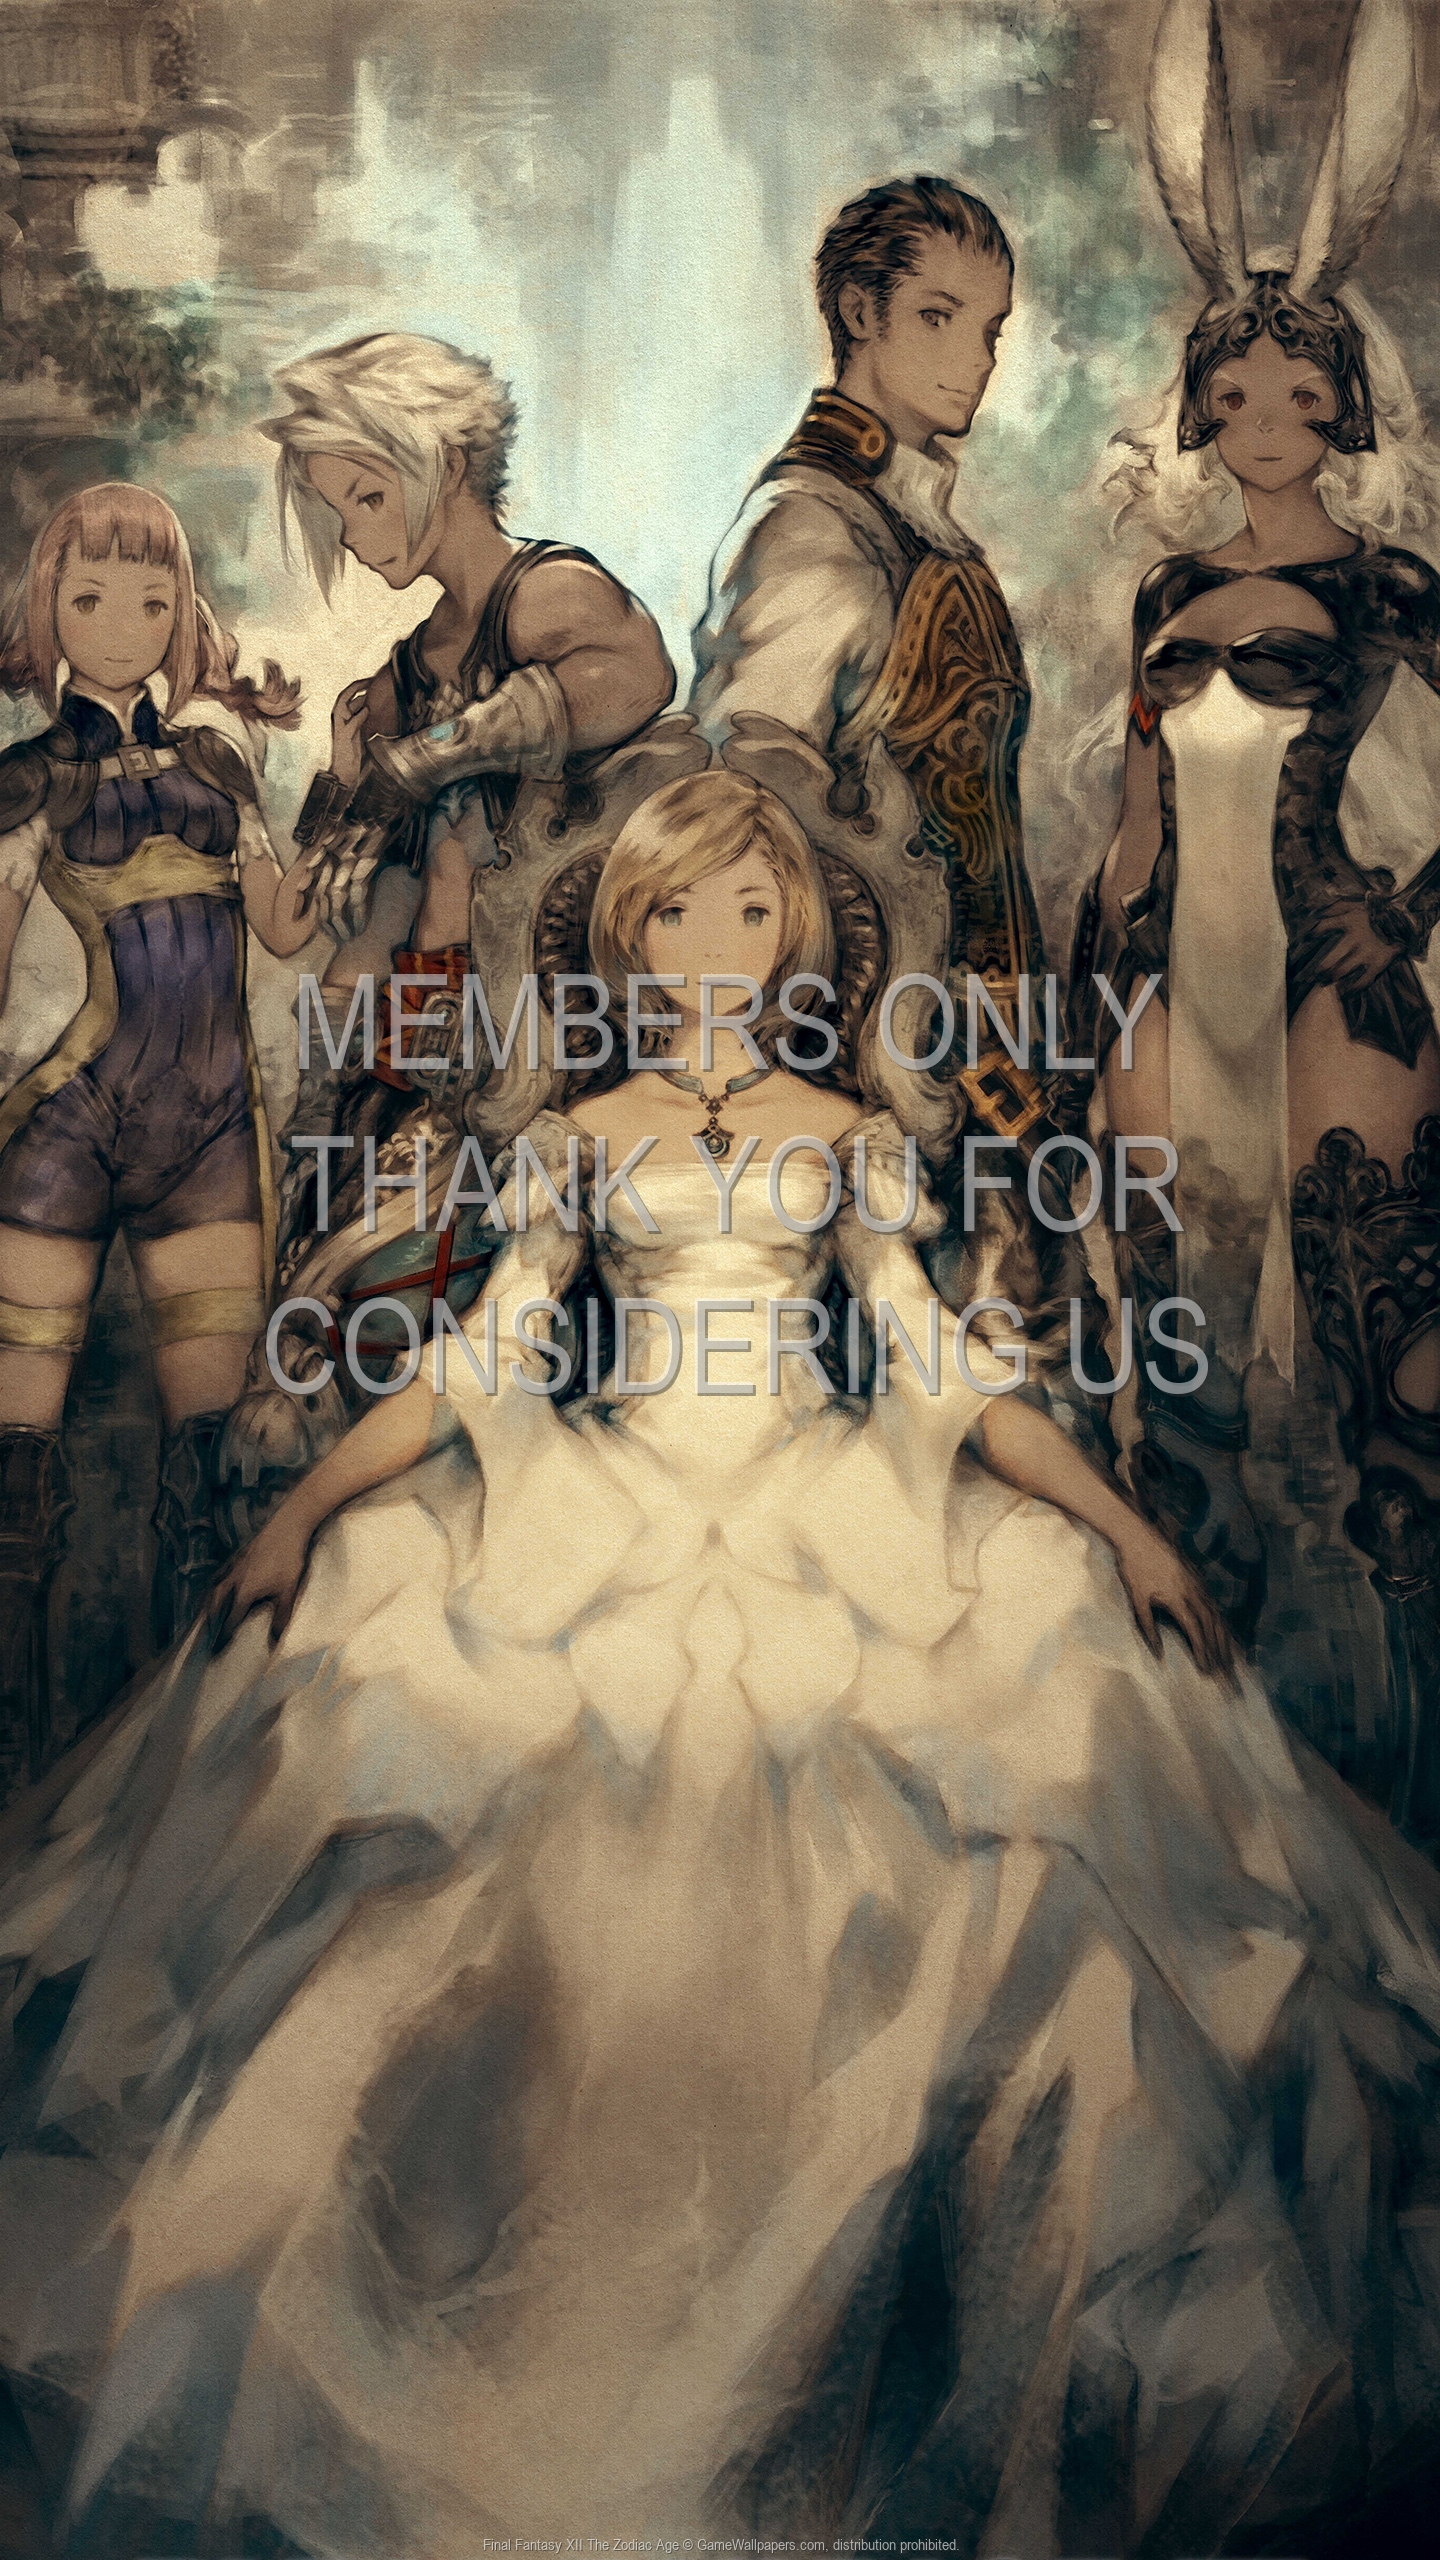 Final Fantasy XII The Zodiac Age 1920x1080 Mobile wallpaper or background 01